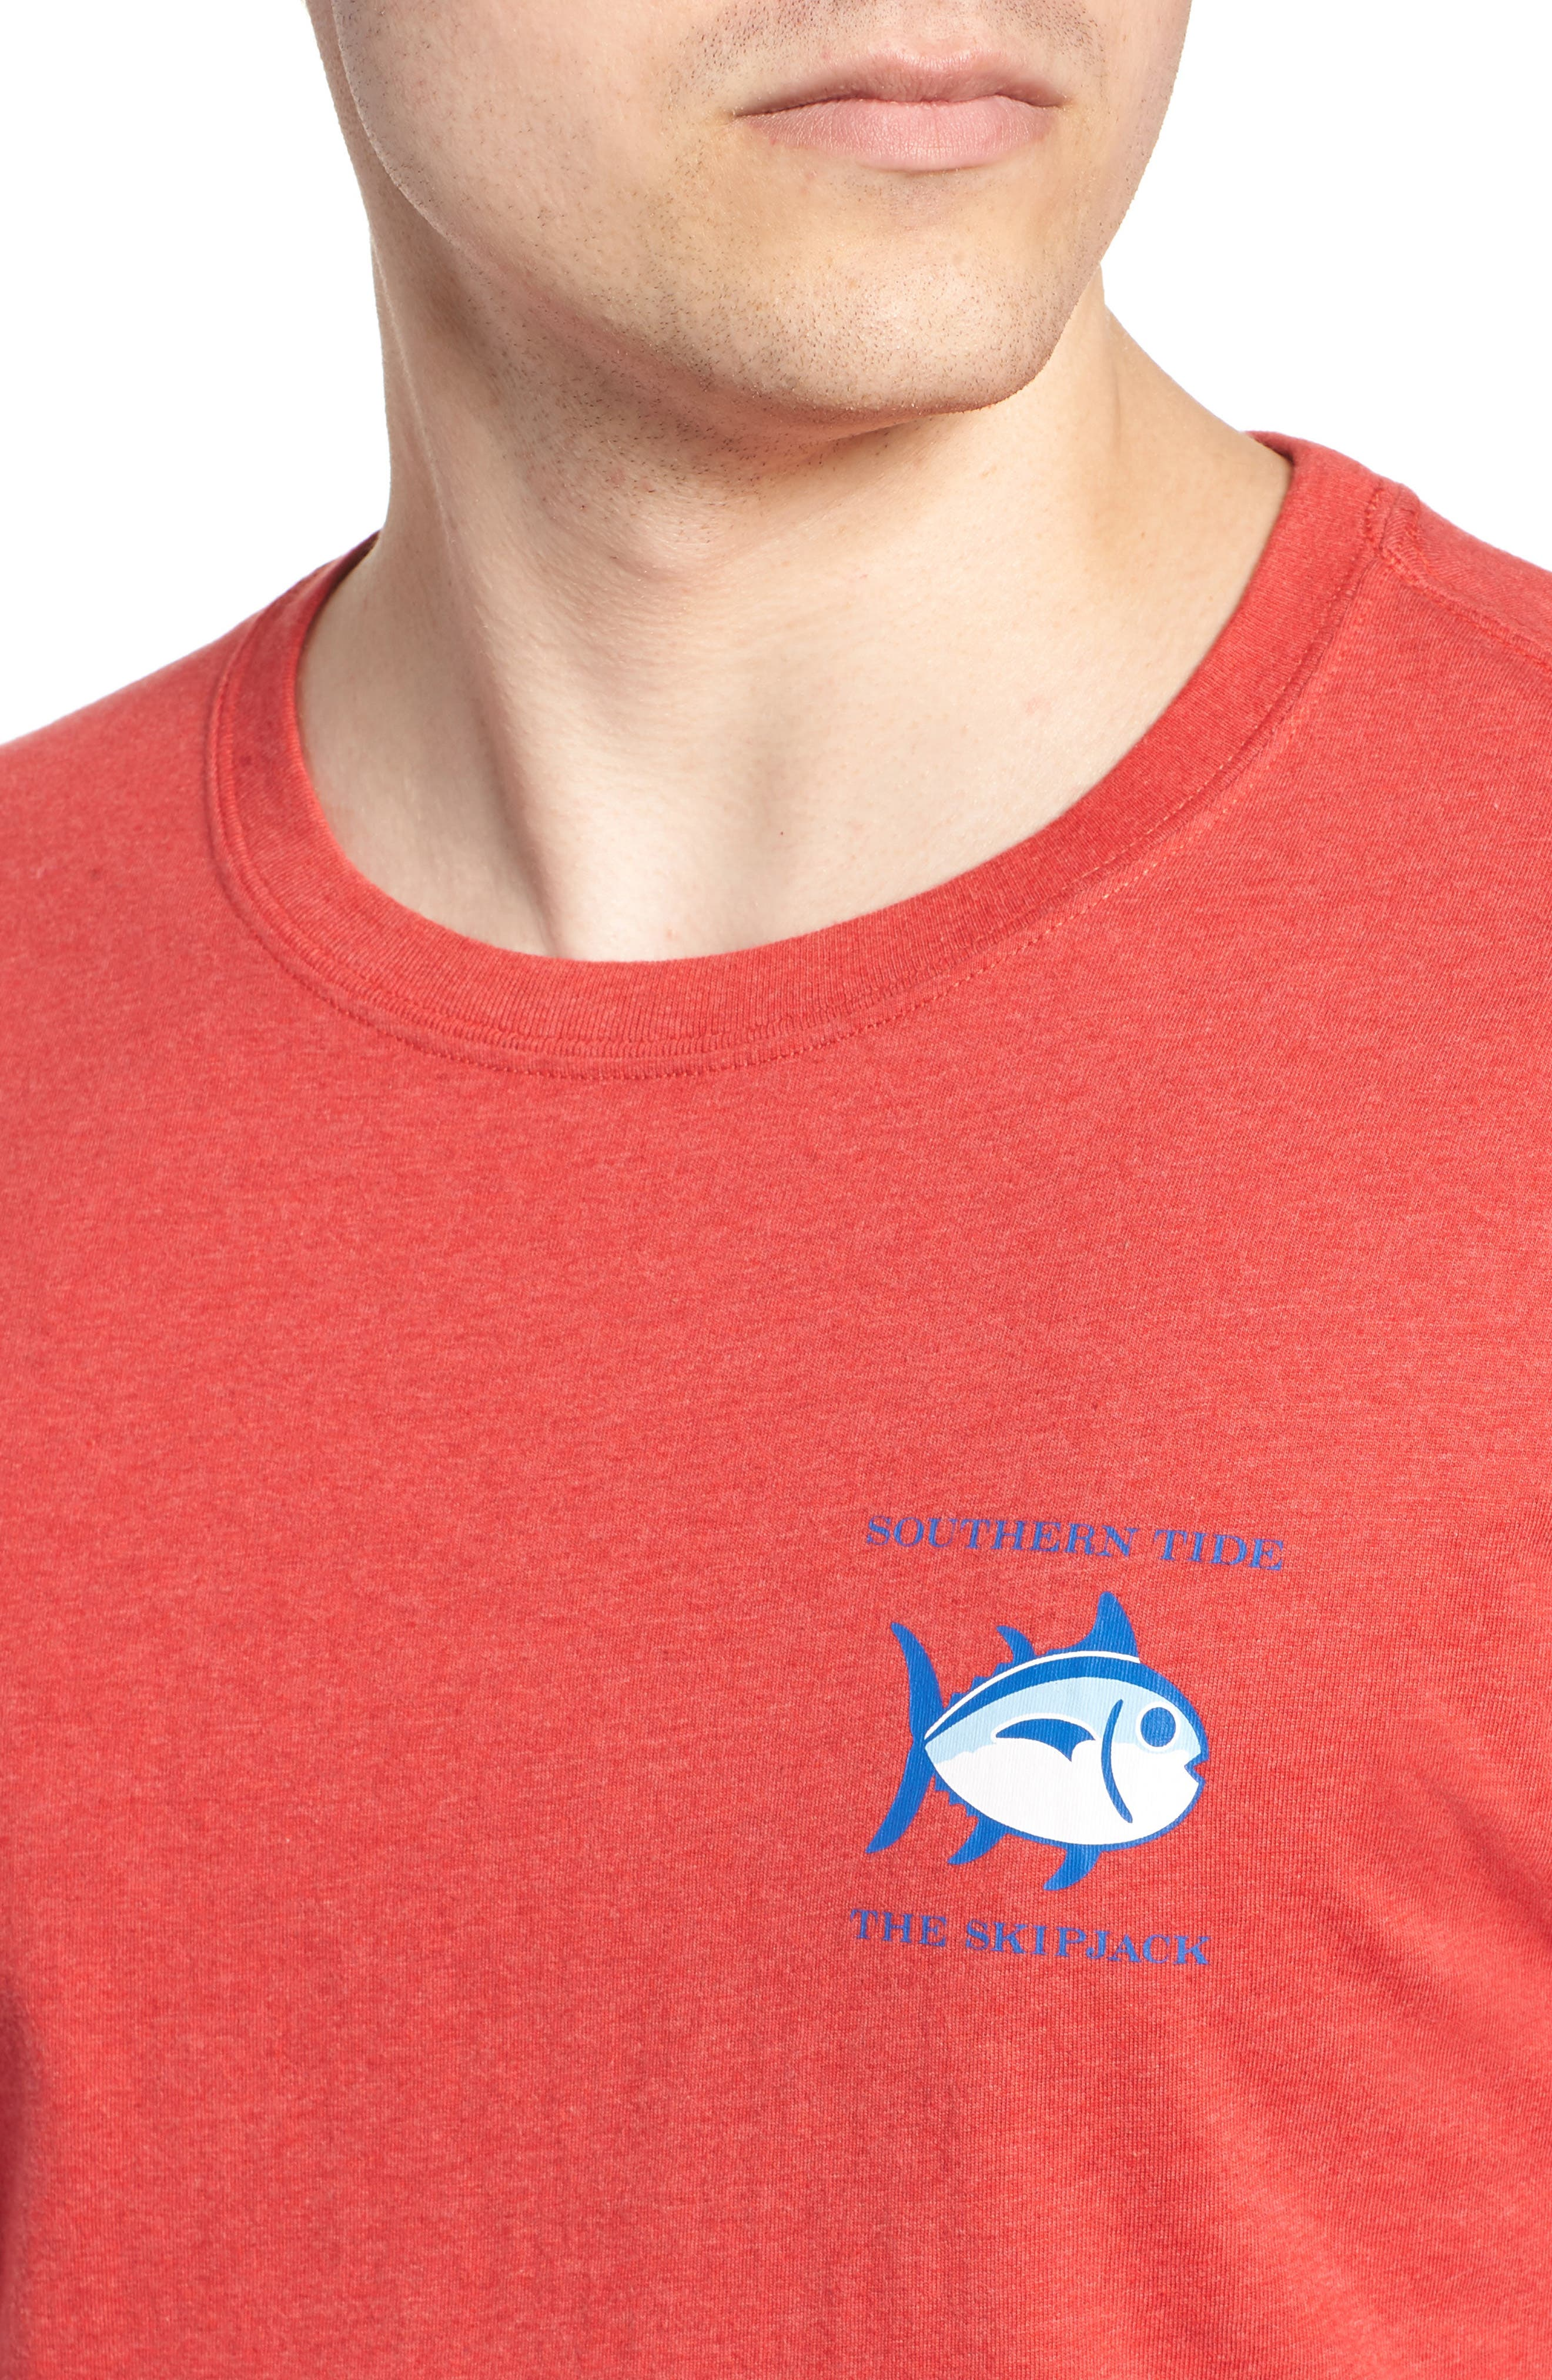 Original Skipjack T-Shirt,                             Alternate thumbnail 25, color,